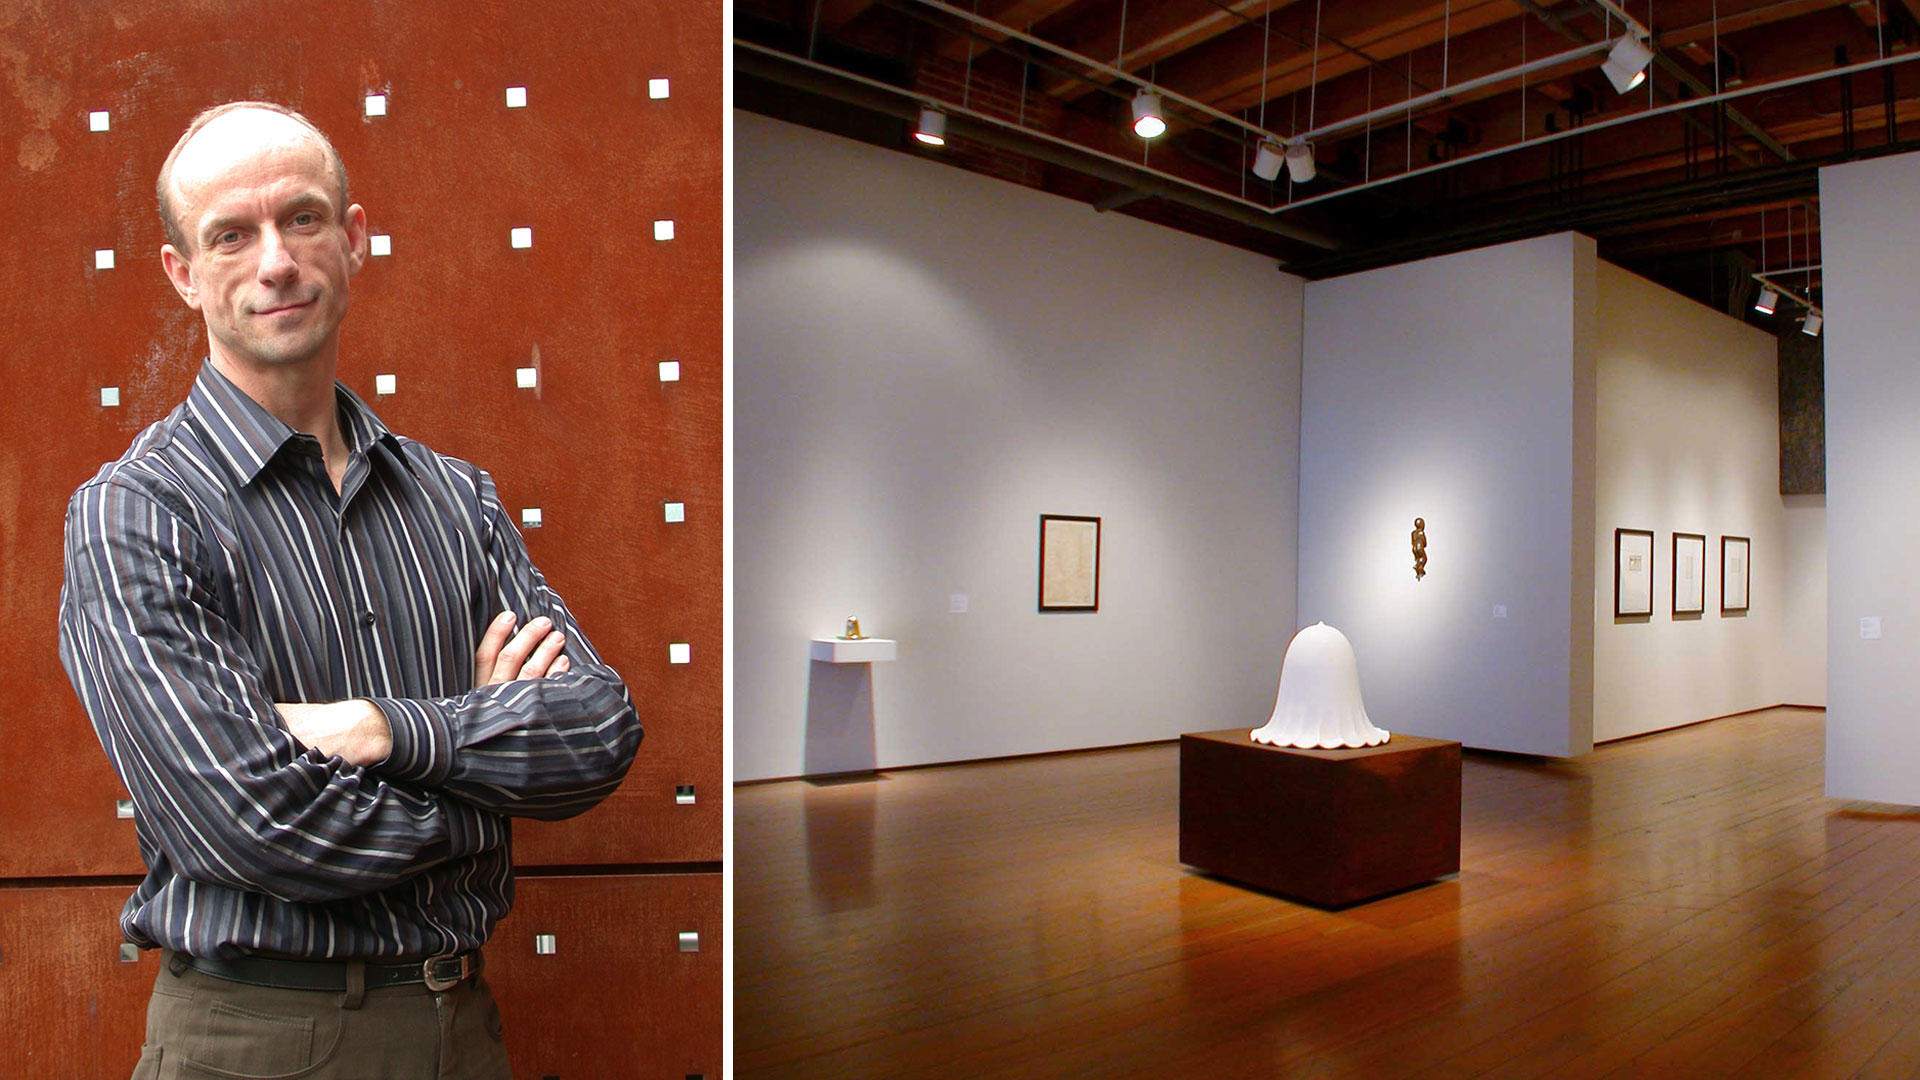 A photo of a man, and a photo of a gallery exhibit.